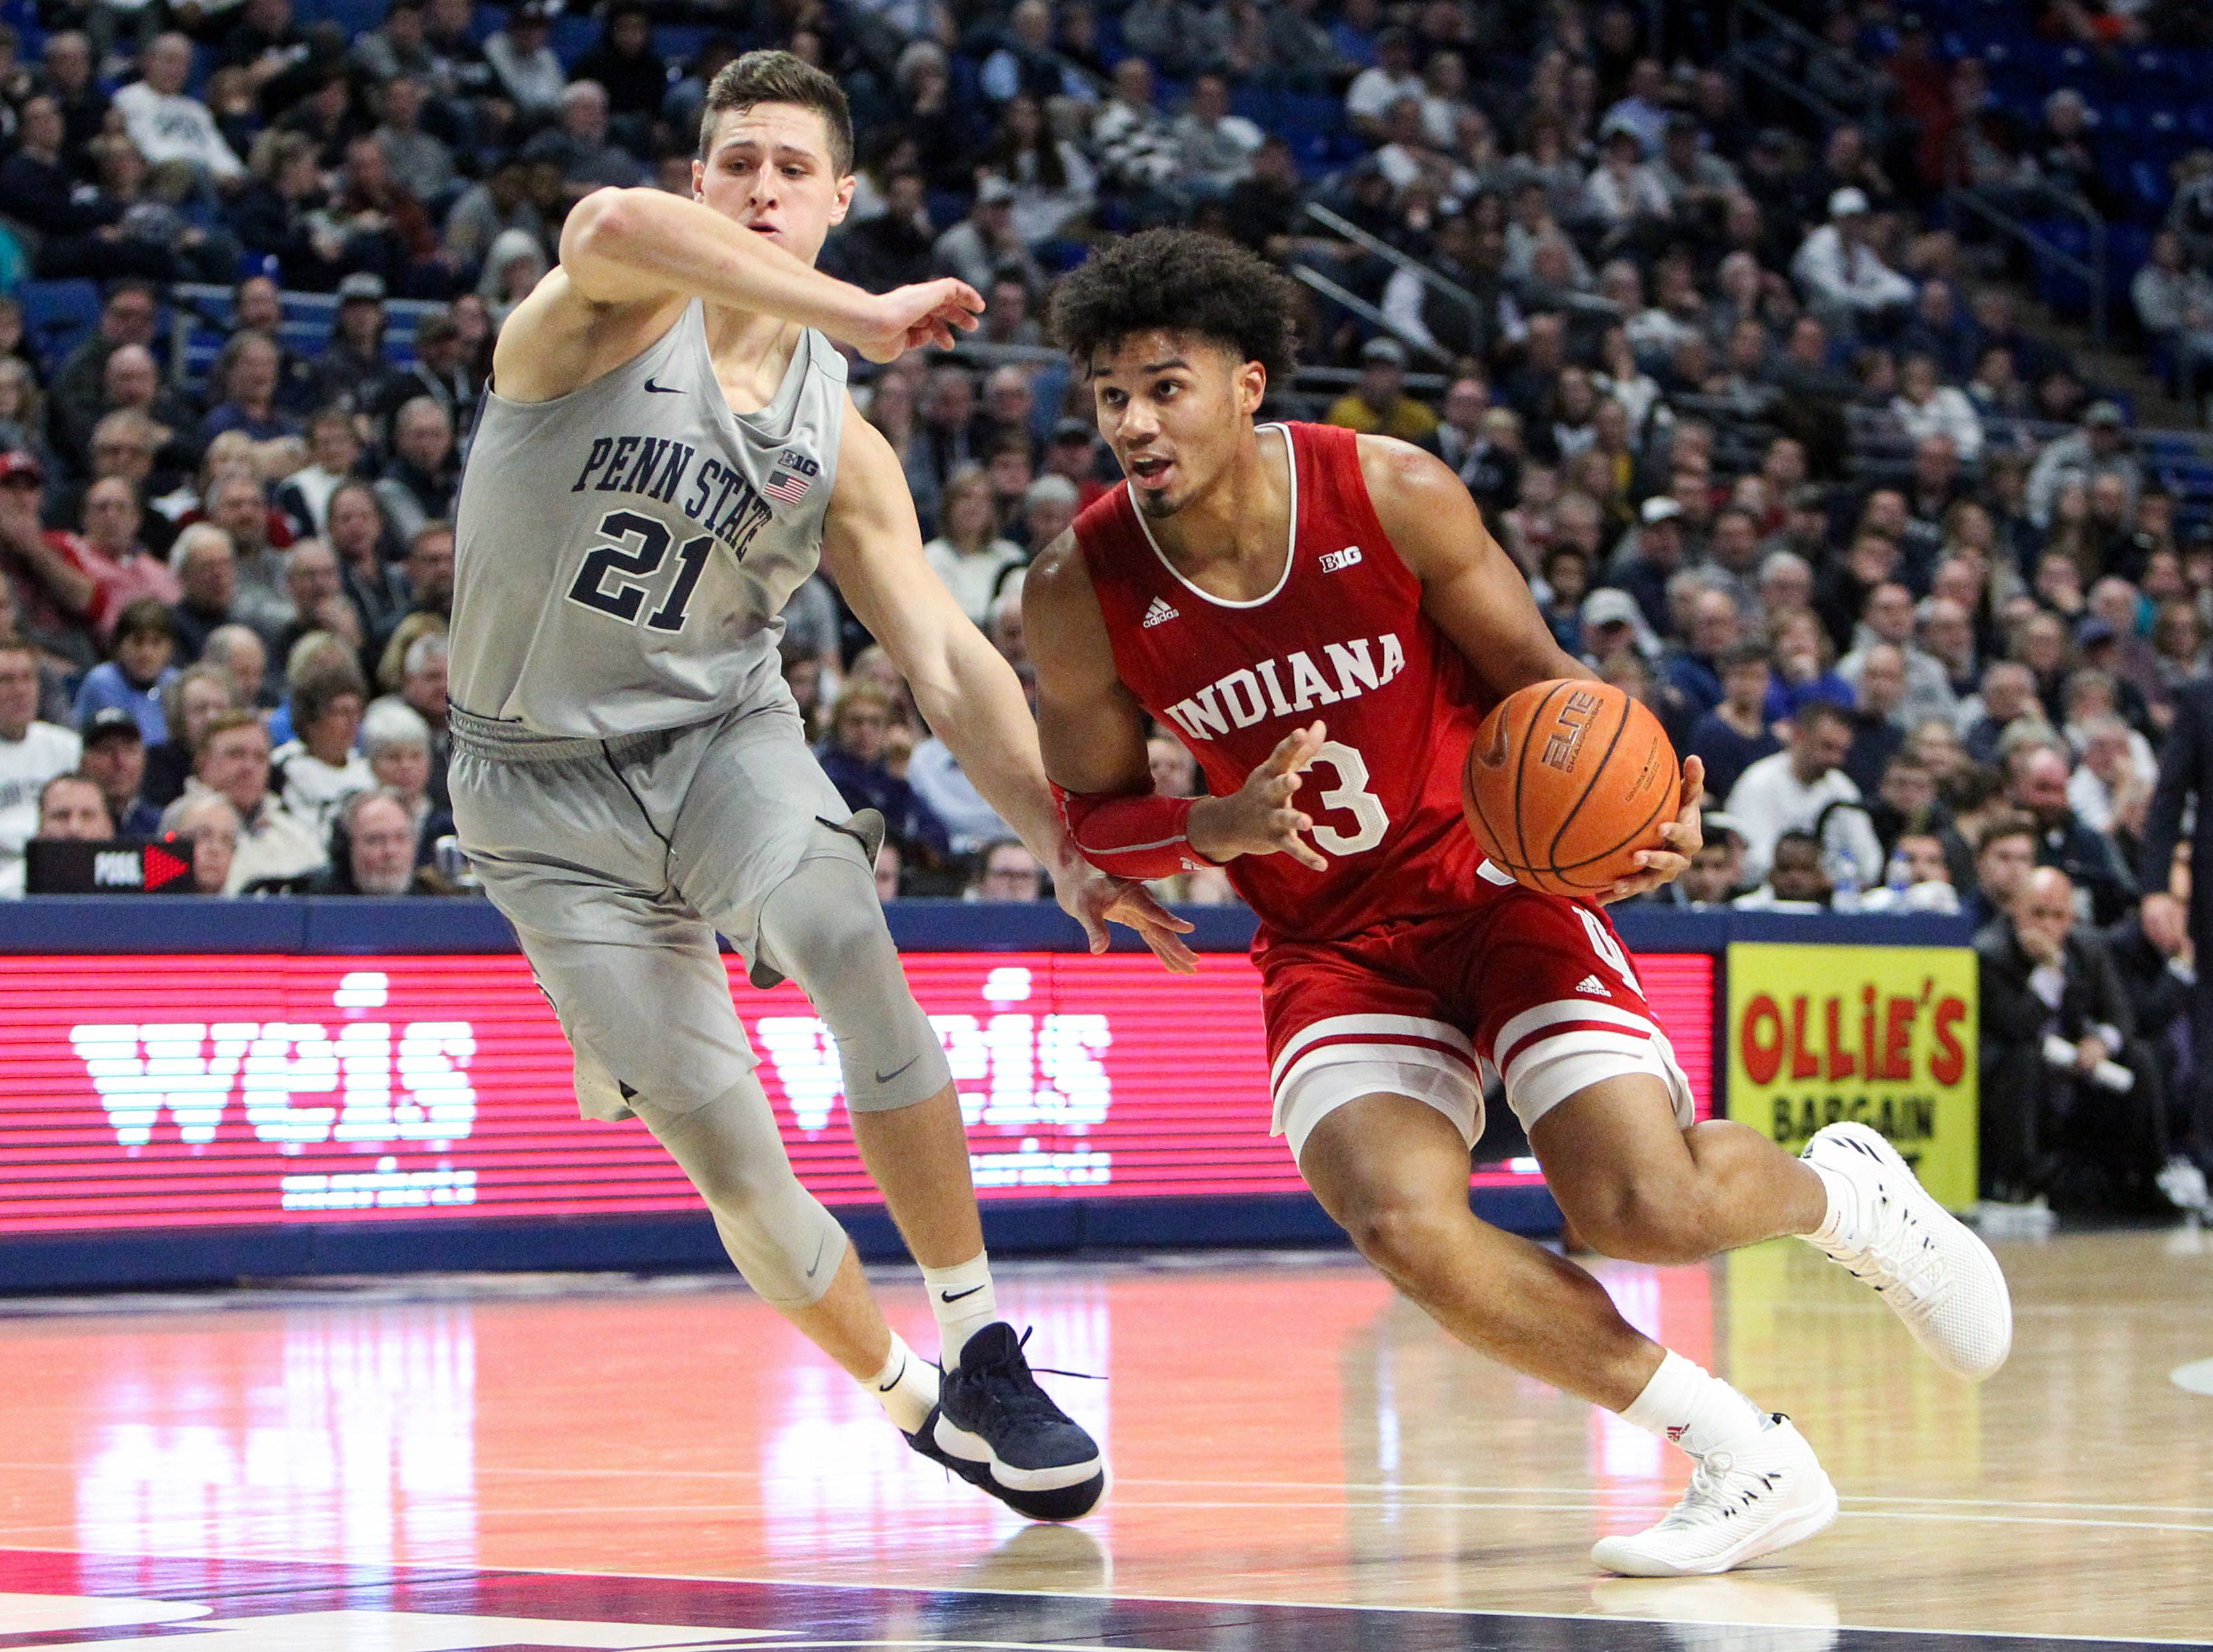 Dec 4, 2018; University Park, PA, USA; Indiana Hoosiers forward Justin Smith (3) dribbles the ball around the outside against Penn State Nittany Lions forward John Harrar (21) during the second half at Bryce Jordan Center. Indiana defeated Penn State 64-62. Mandatory Credit: Matthew O'Haren-USA TODAY Sports